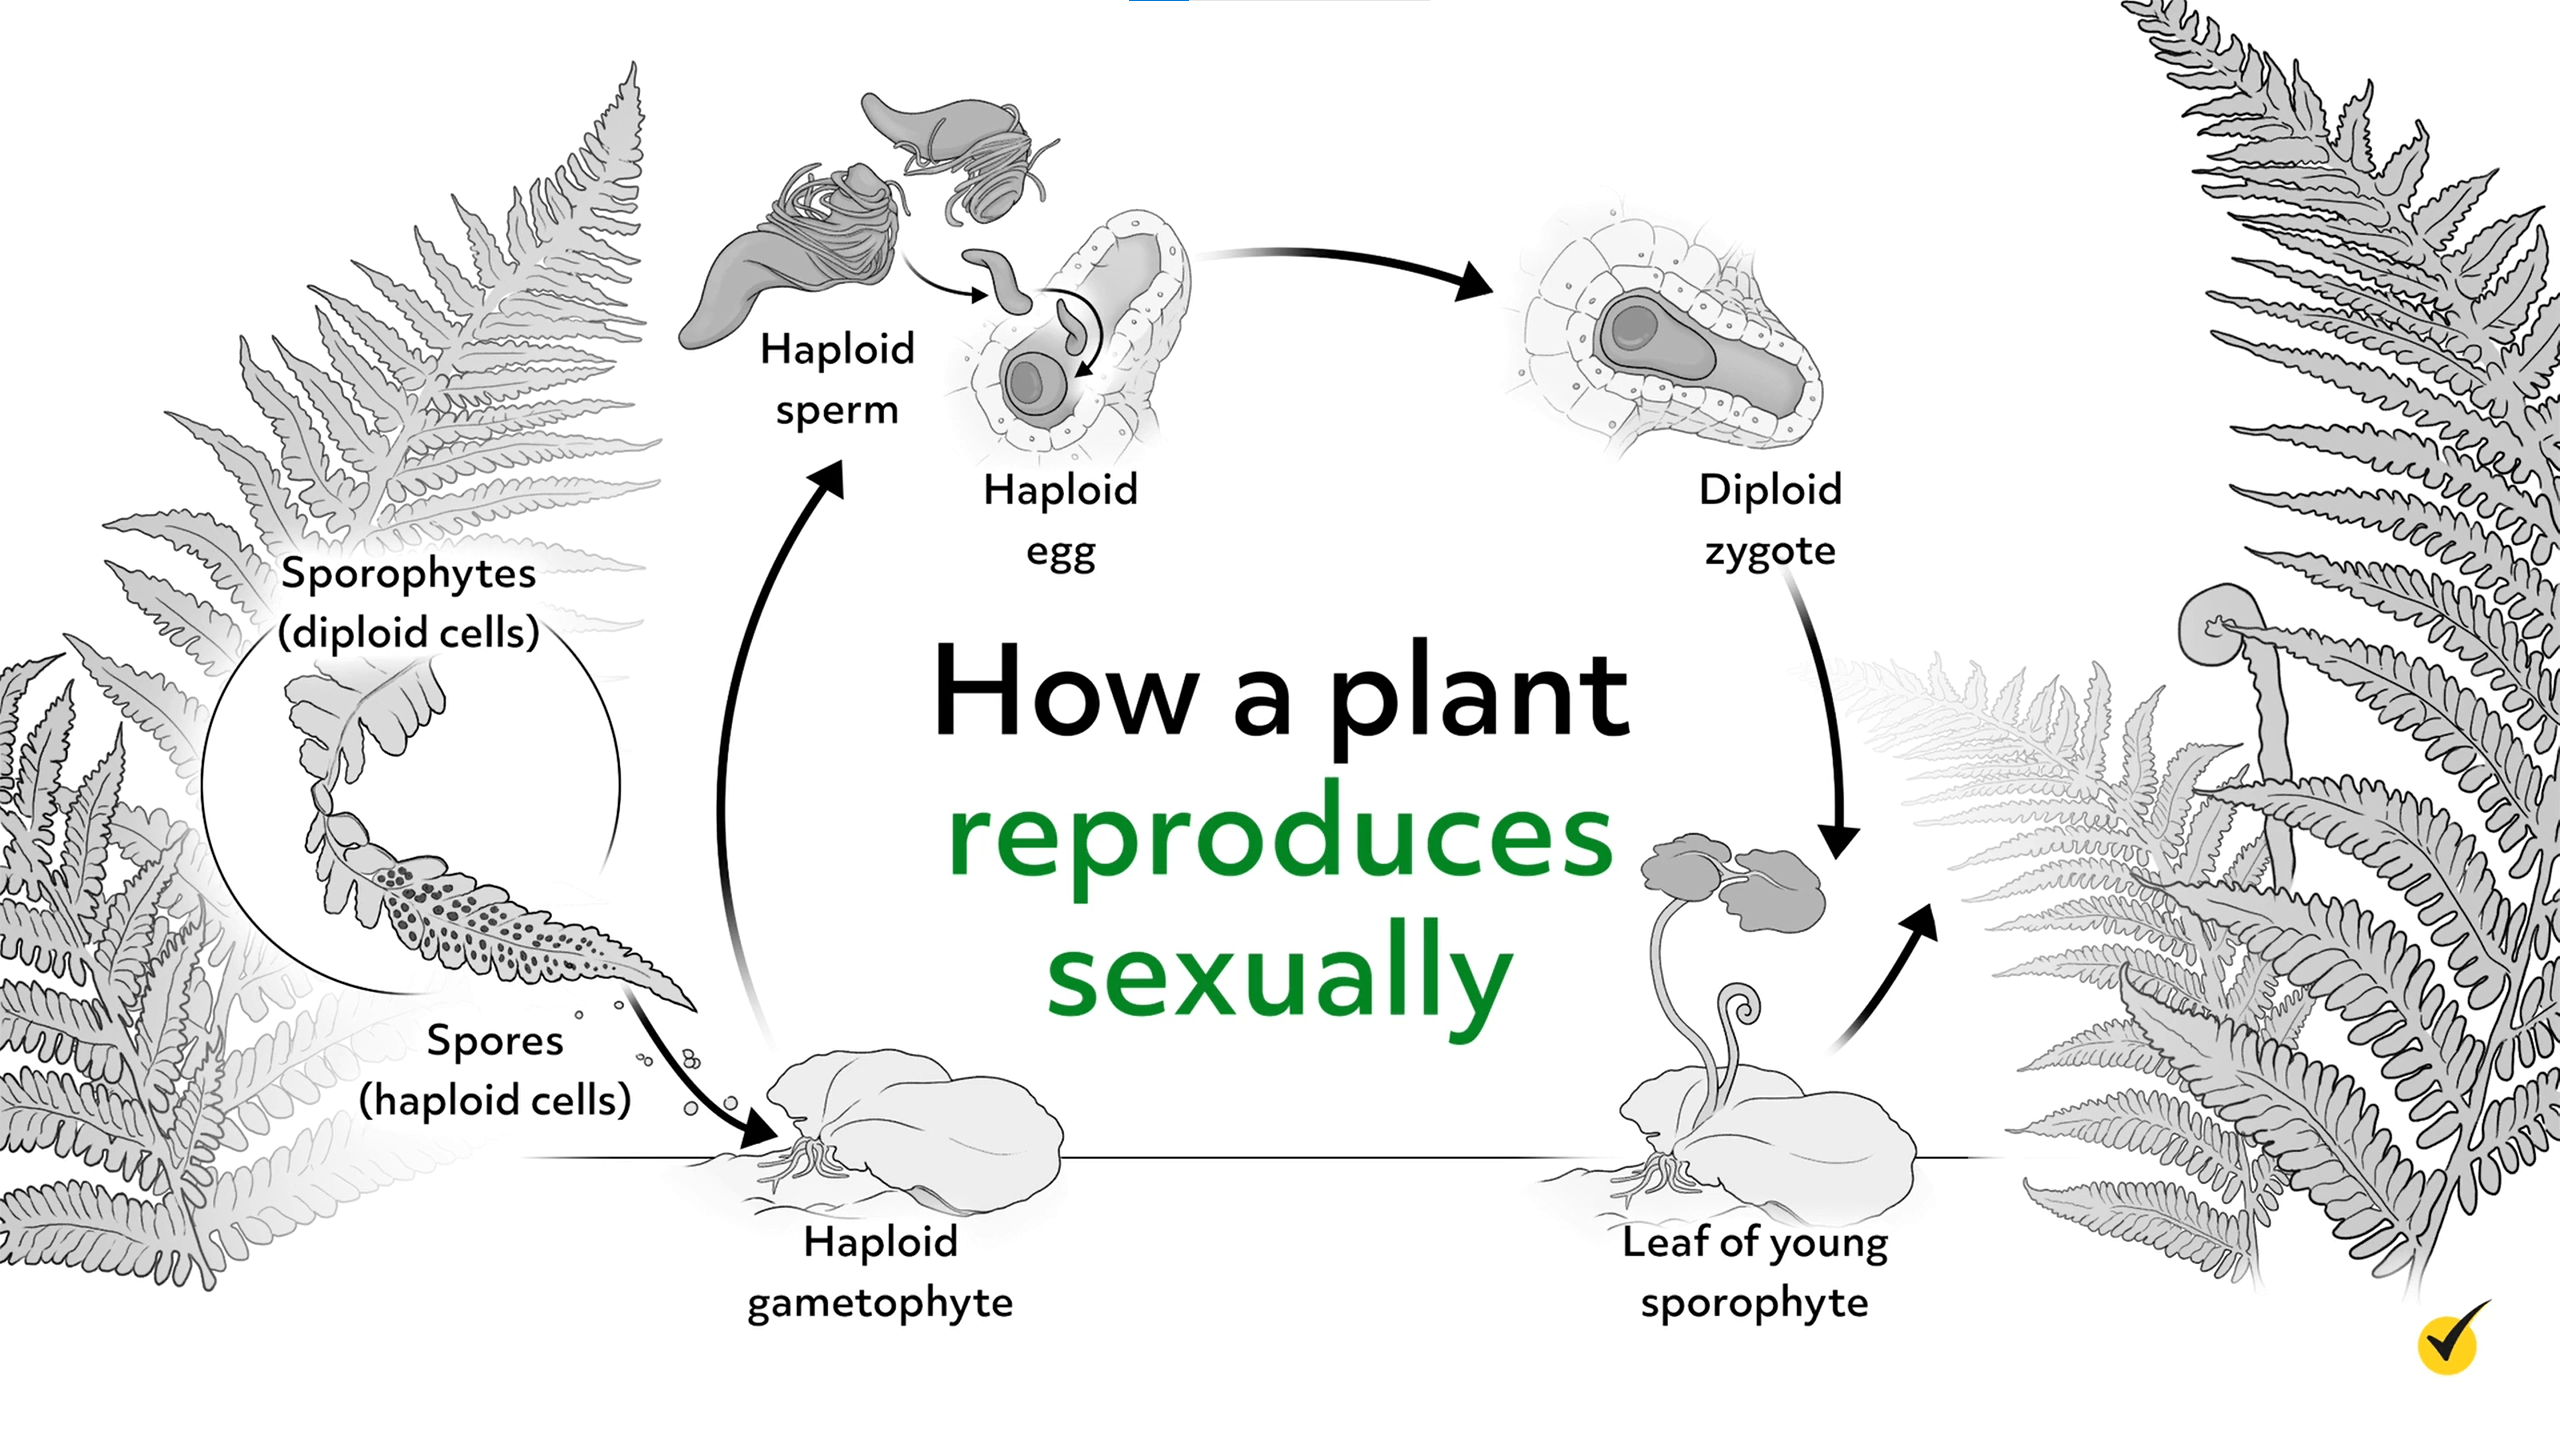 Diagram of how a plant reproduces sexually.